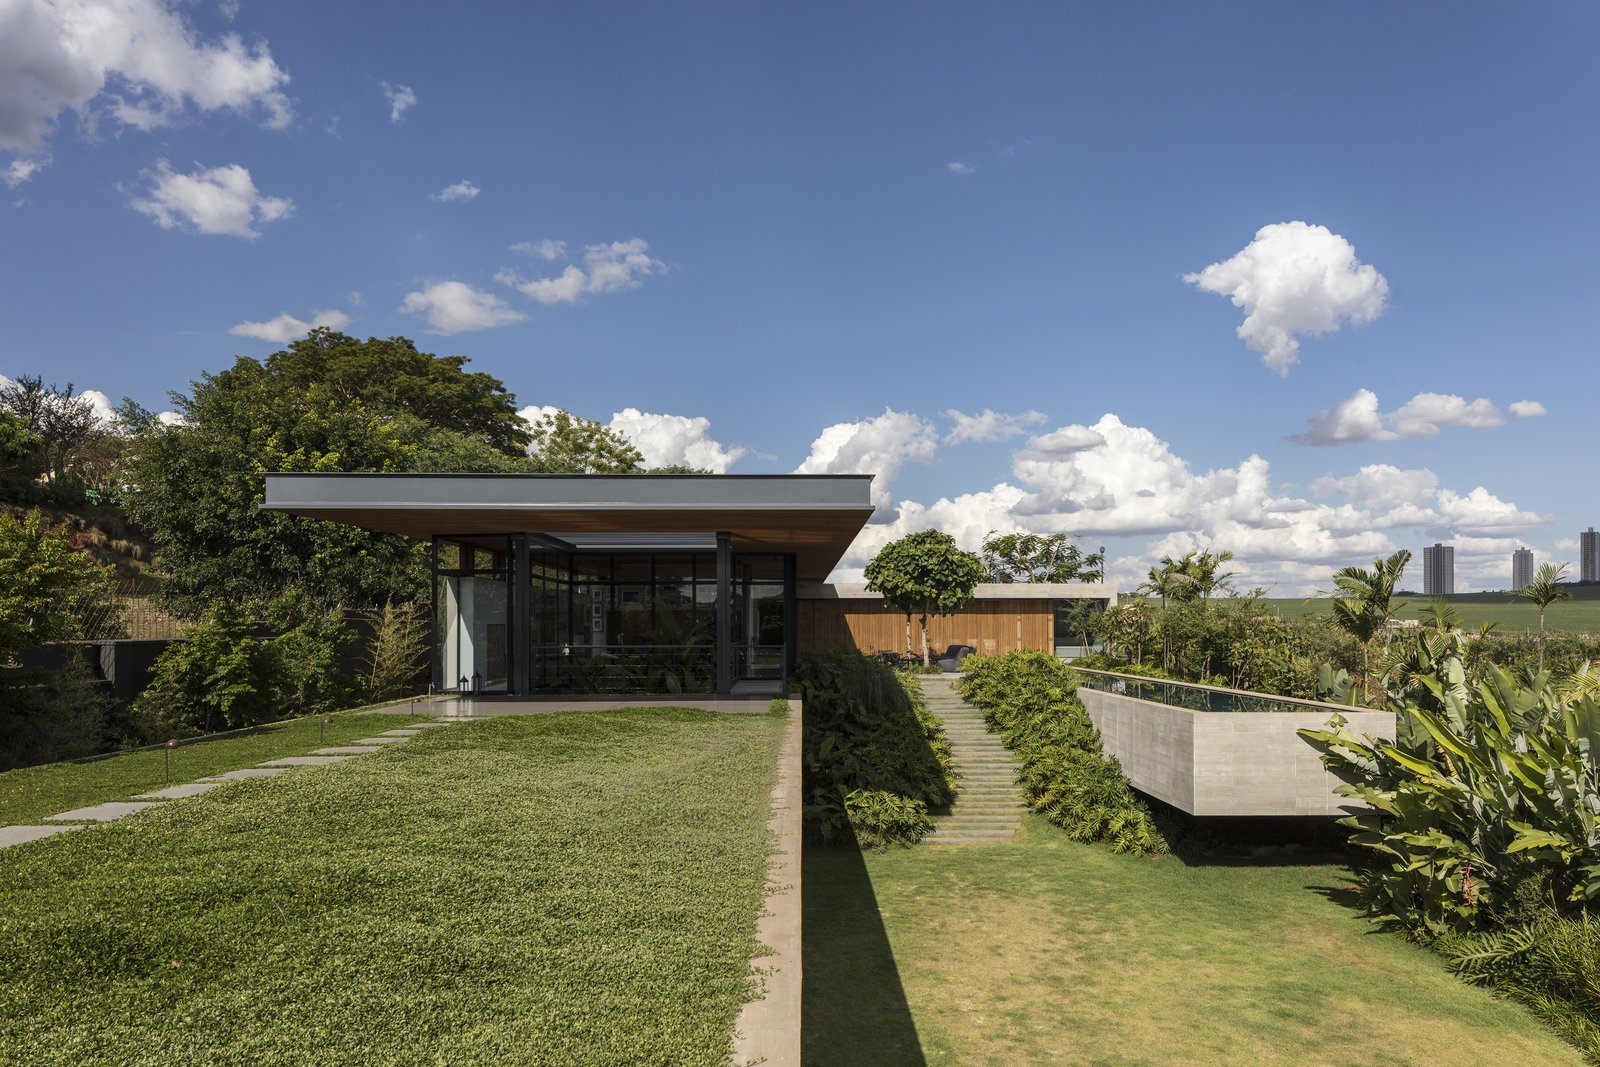 Outdoor, Back Yard, Grass, Trees, Swimming Pools, Tubs, Shower, Concrete Pools, Tubs, Shower, and Gardens Private spaces and sleeping quarters are hidden below the green roof, providing intimate retreats.   Photo 3 of 12 in A Green Roof Helps Camouflage This Striking Home in Brazil